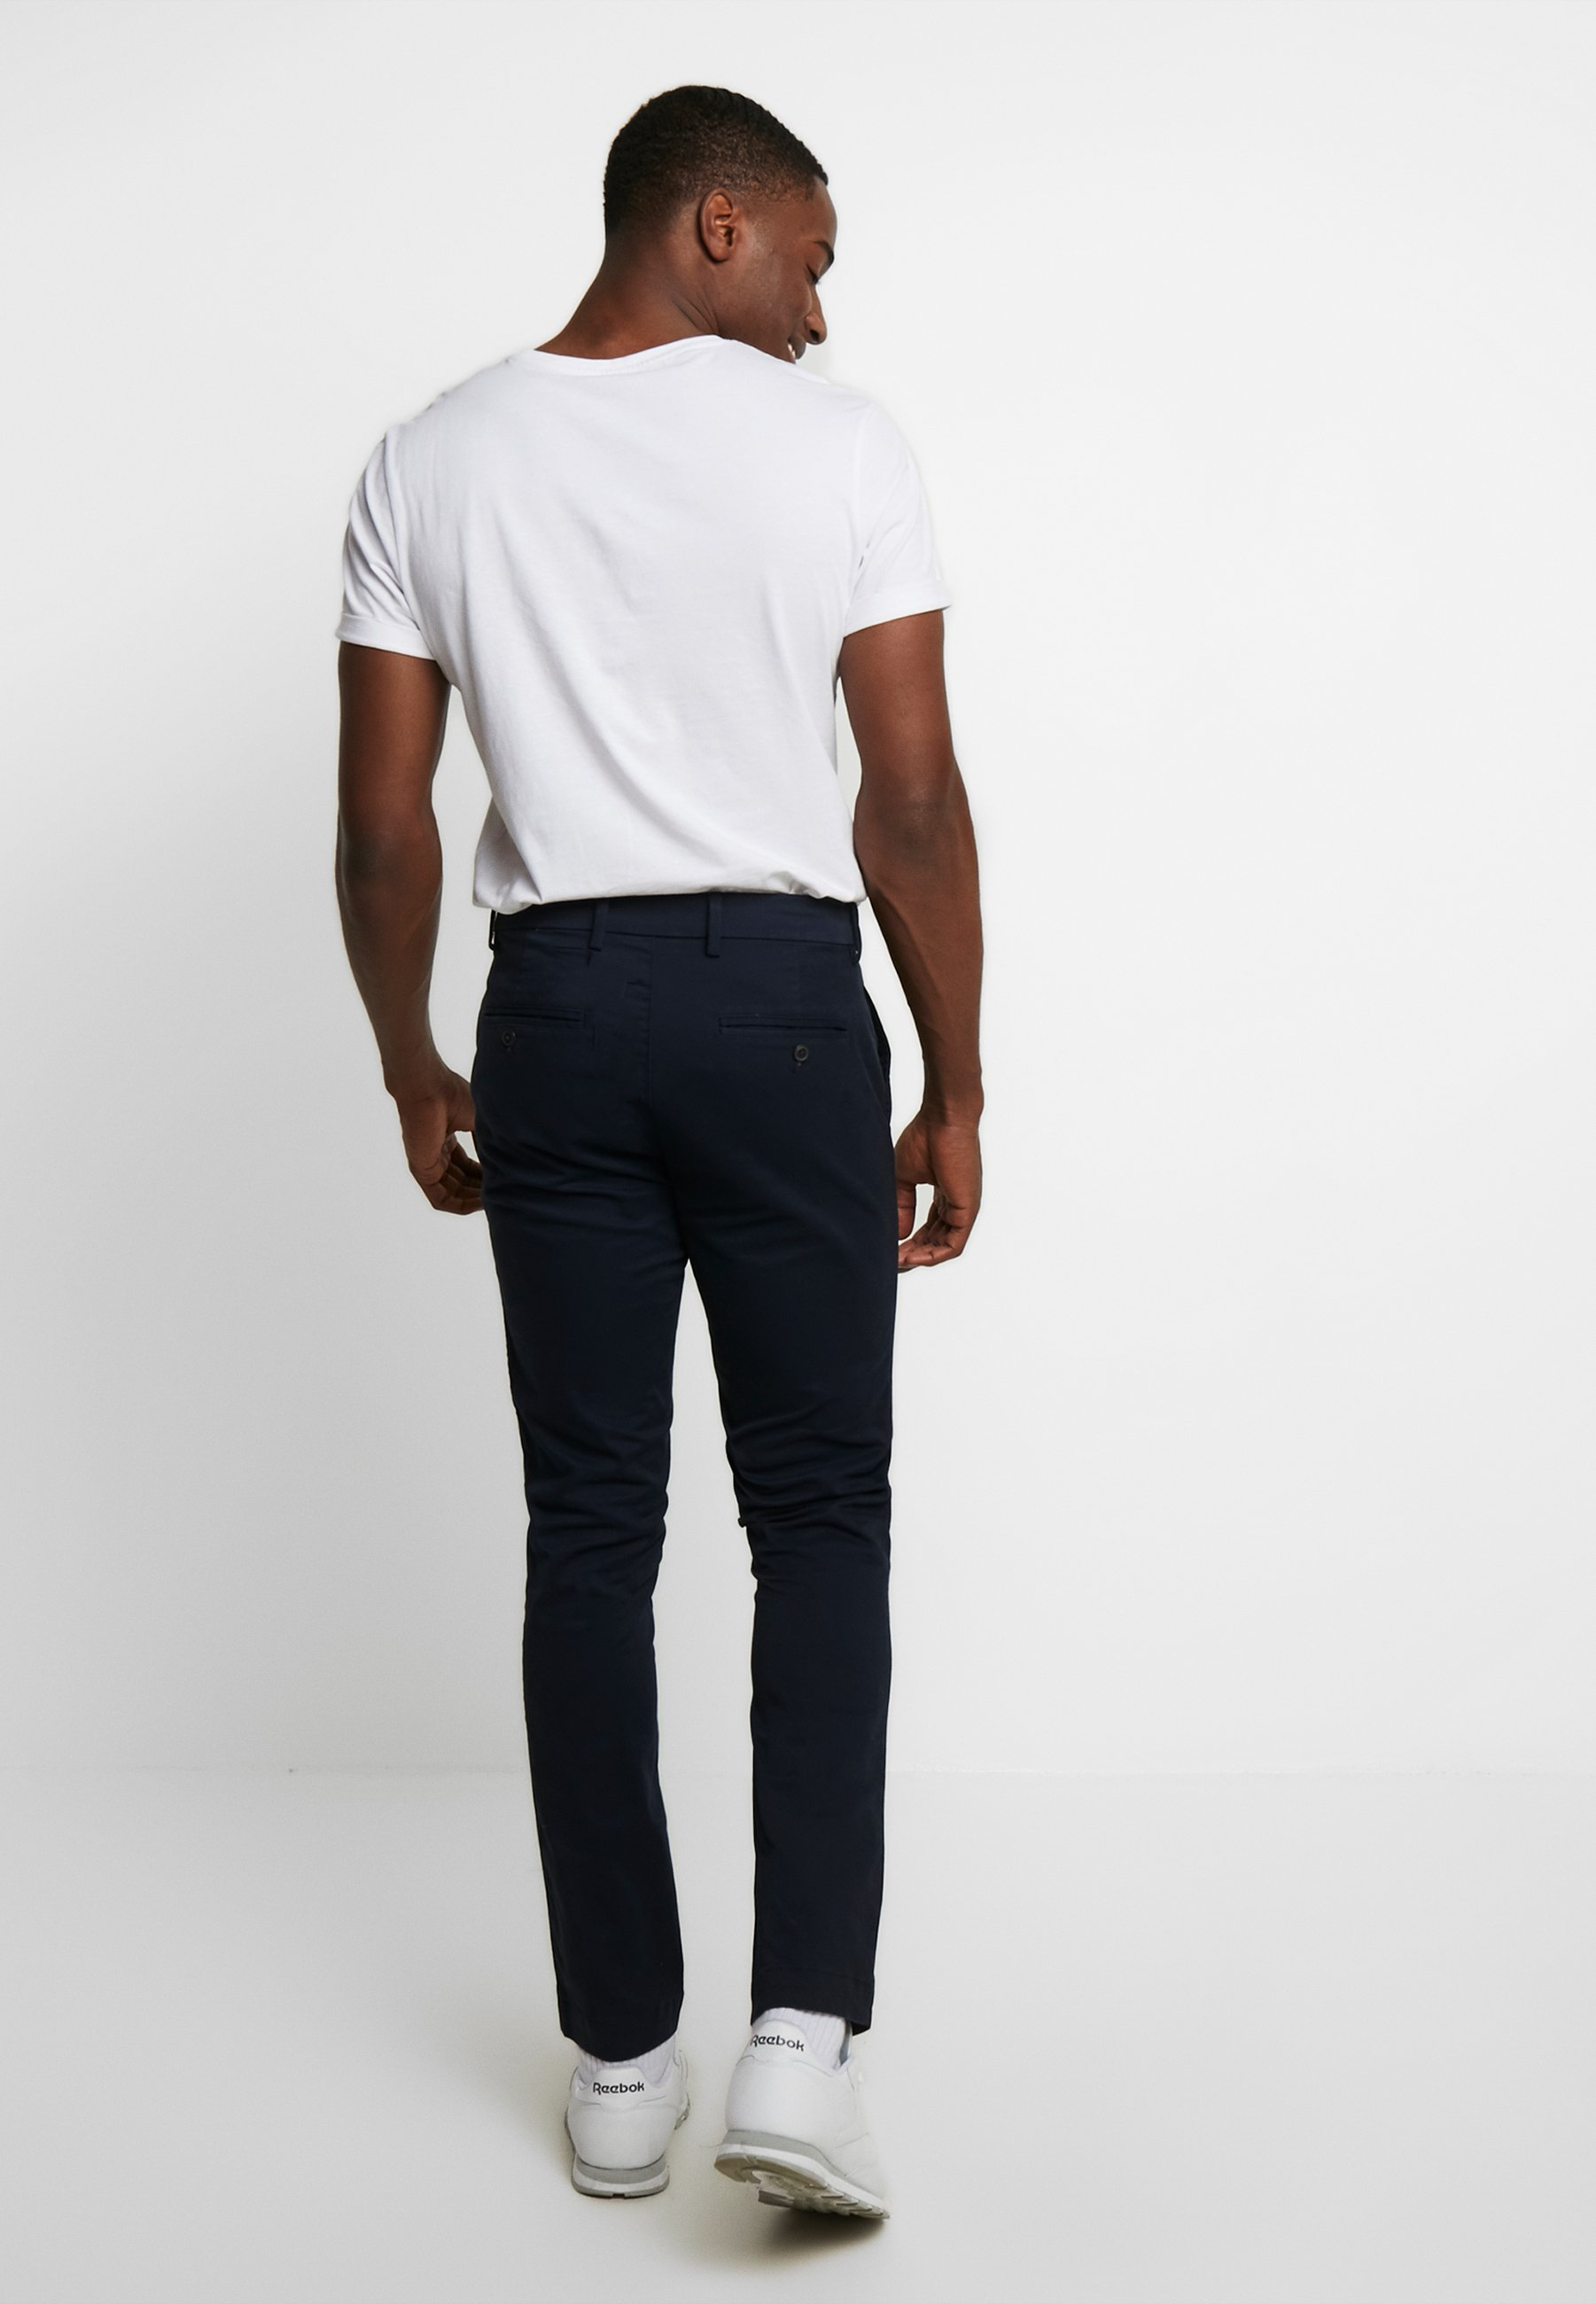 Factory Price Low Cost Men's Clothing GAP ESSENTIAL Chinos new classic navy UXayLOtAx IDVMzkFJ6